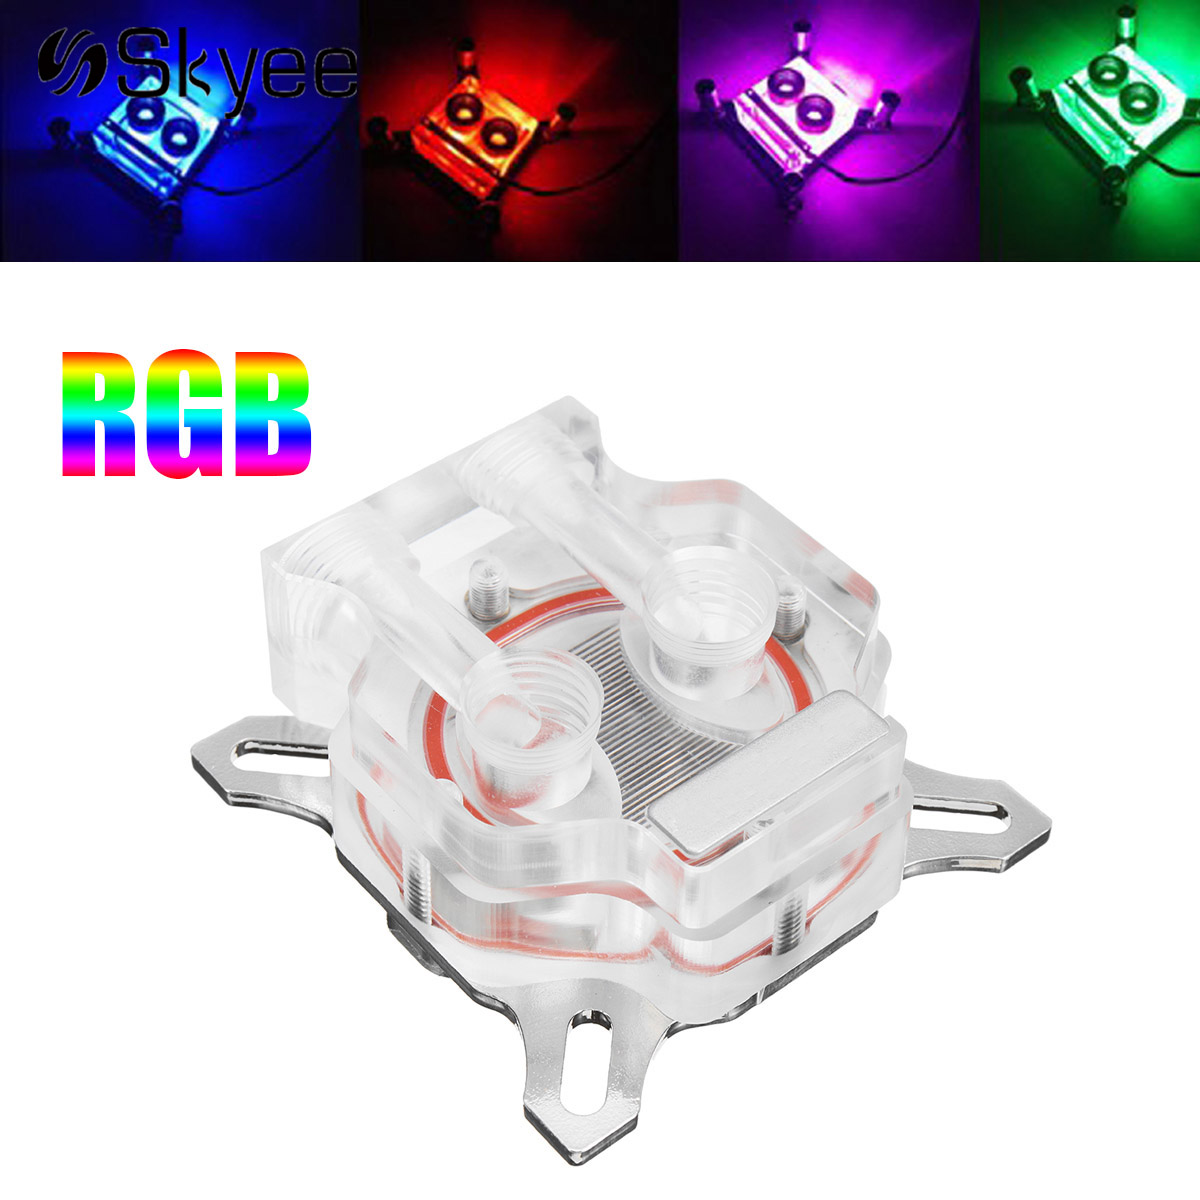 RGB Water Cooling Block Computer Video Card GPU Core Cover Water Heatsink Suitable for 43mm-53mm Hole Pitch VGA-TMD 4pin mgt8012yr w20 graphics card fan vga cooler for xfx gts250 gs 250x ydf5 gts260 video card cooling